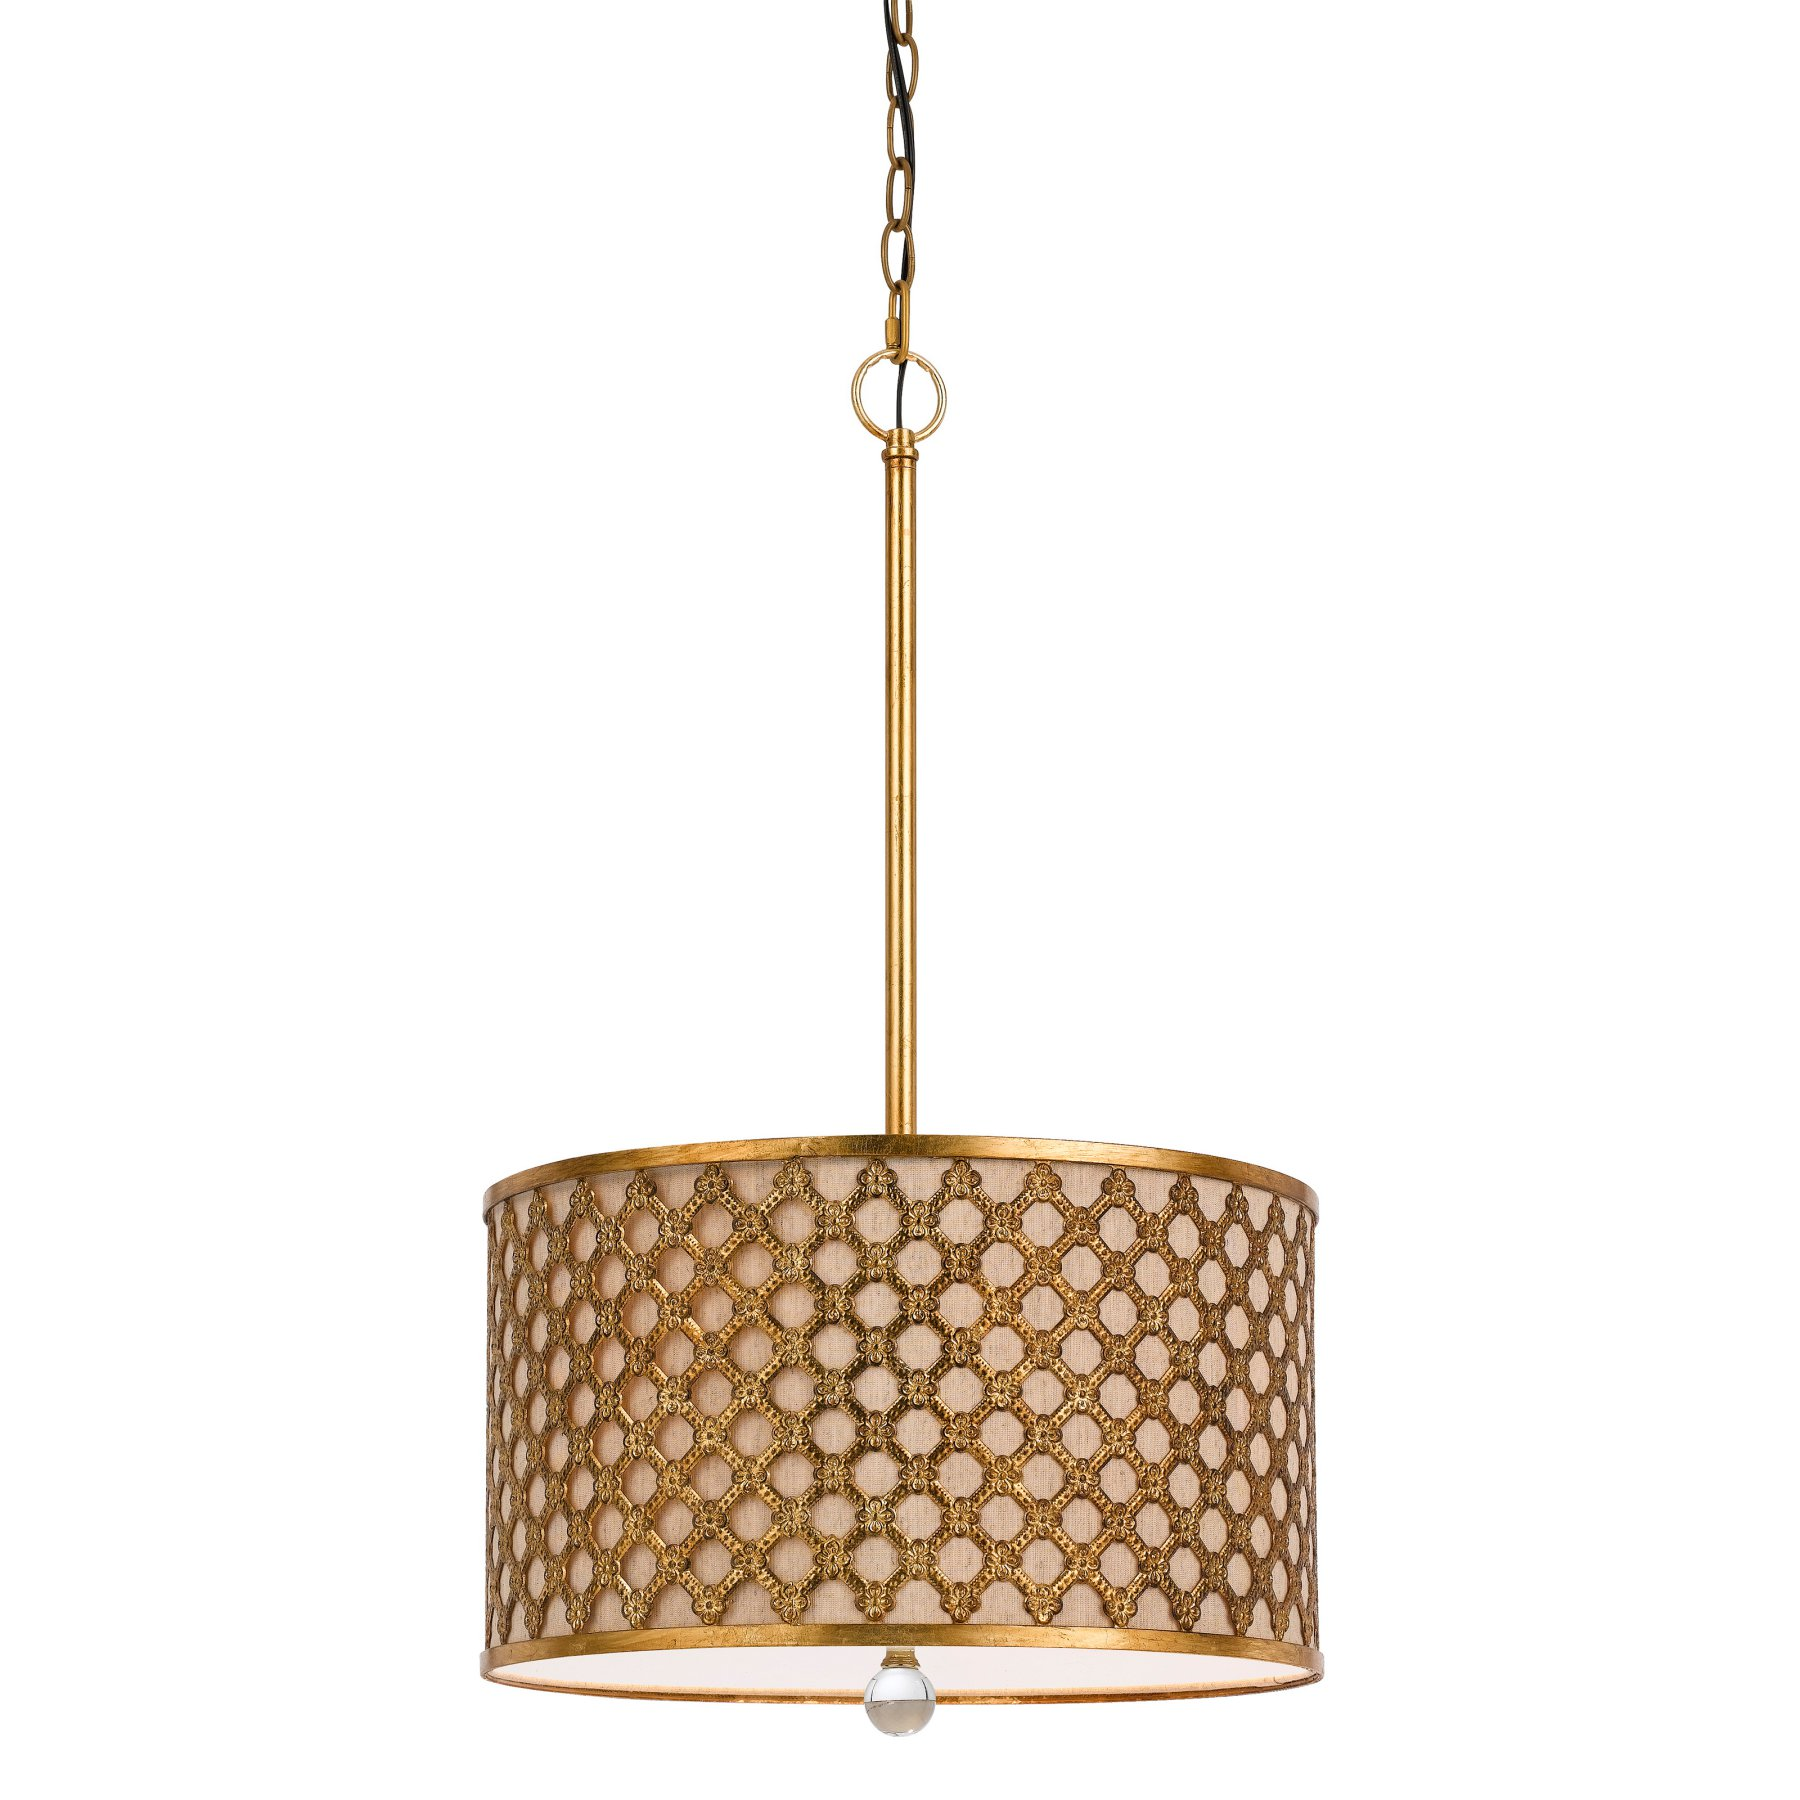 Cal Lighting Fairview Fx 3597 1P Pendant  Fx 3597 1P